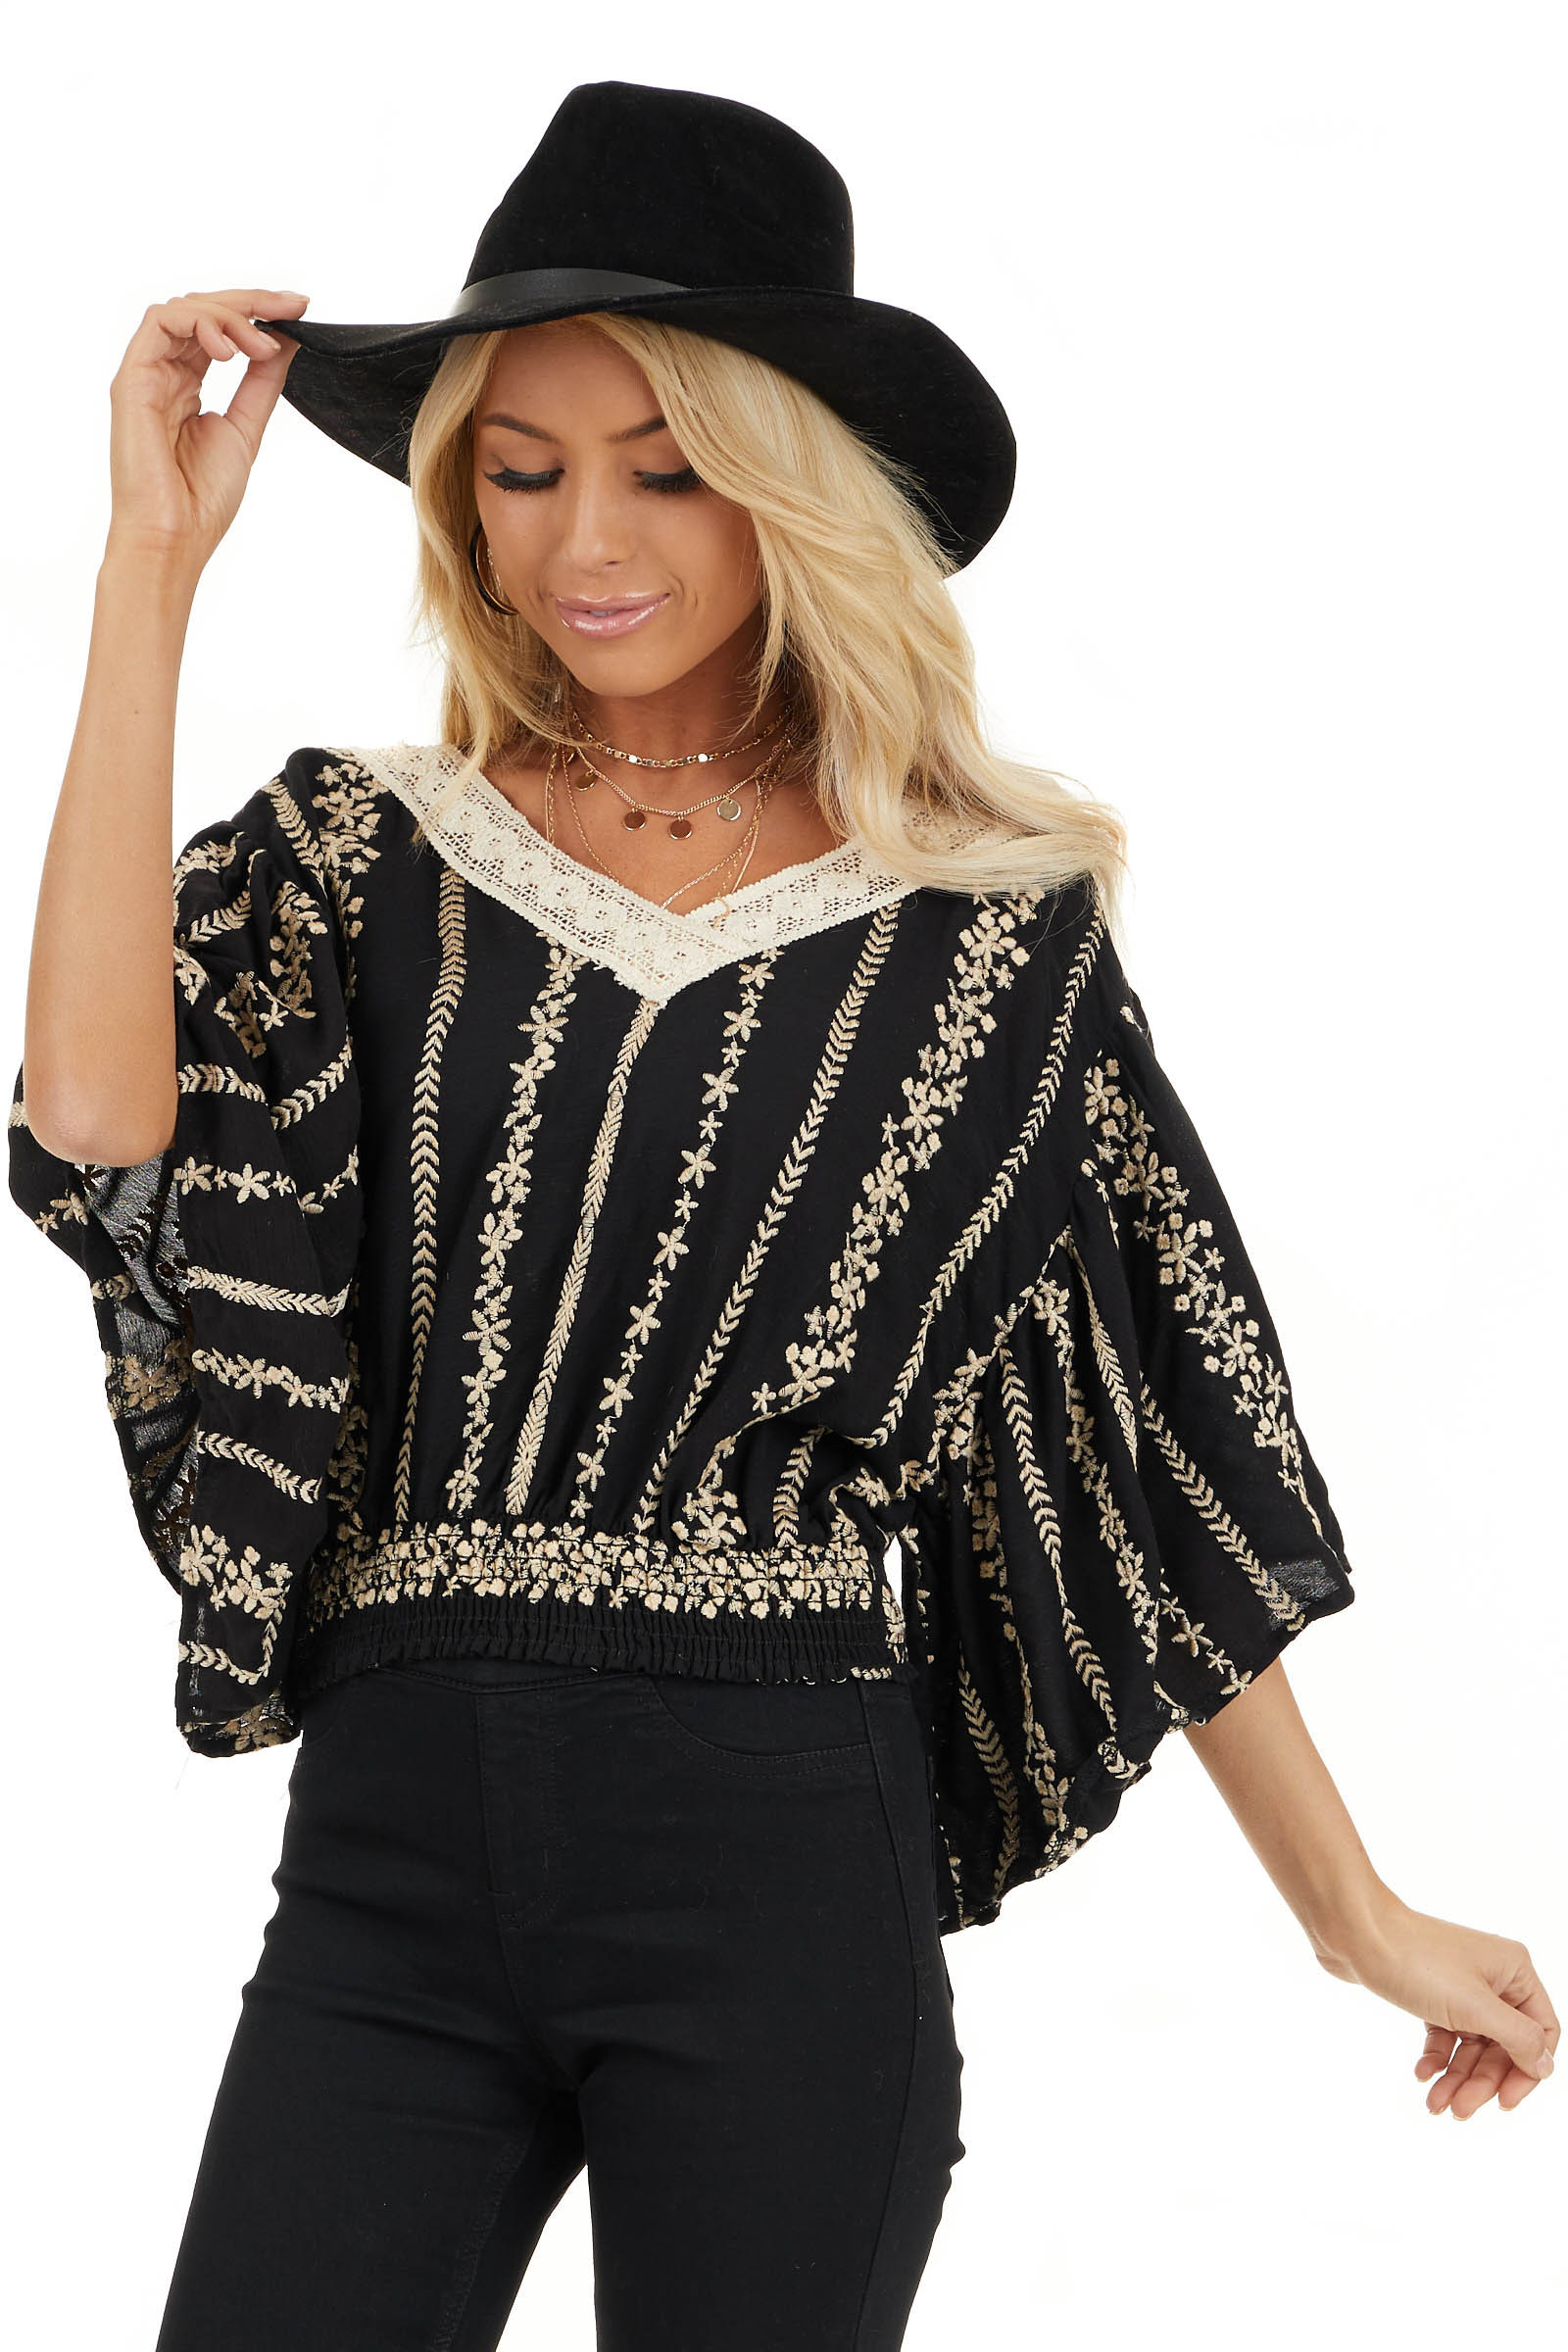 Jet Black V Neck Top with Cream Embroidered Details front close up